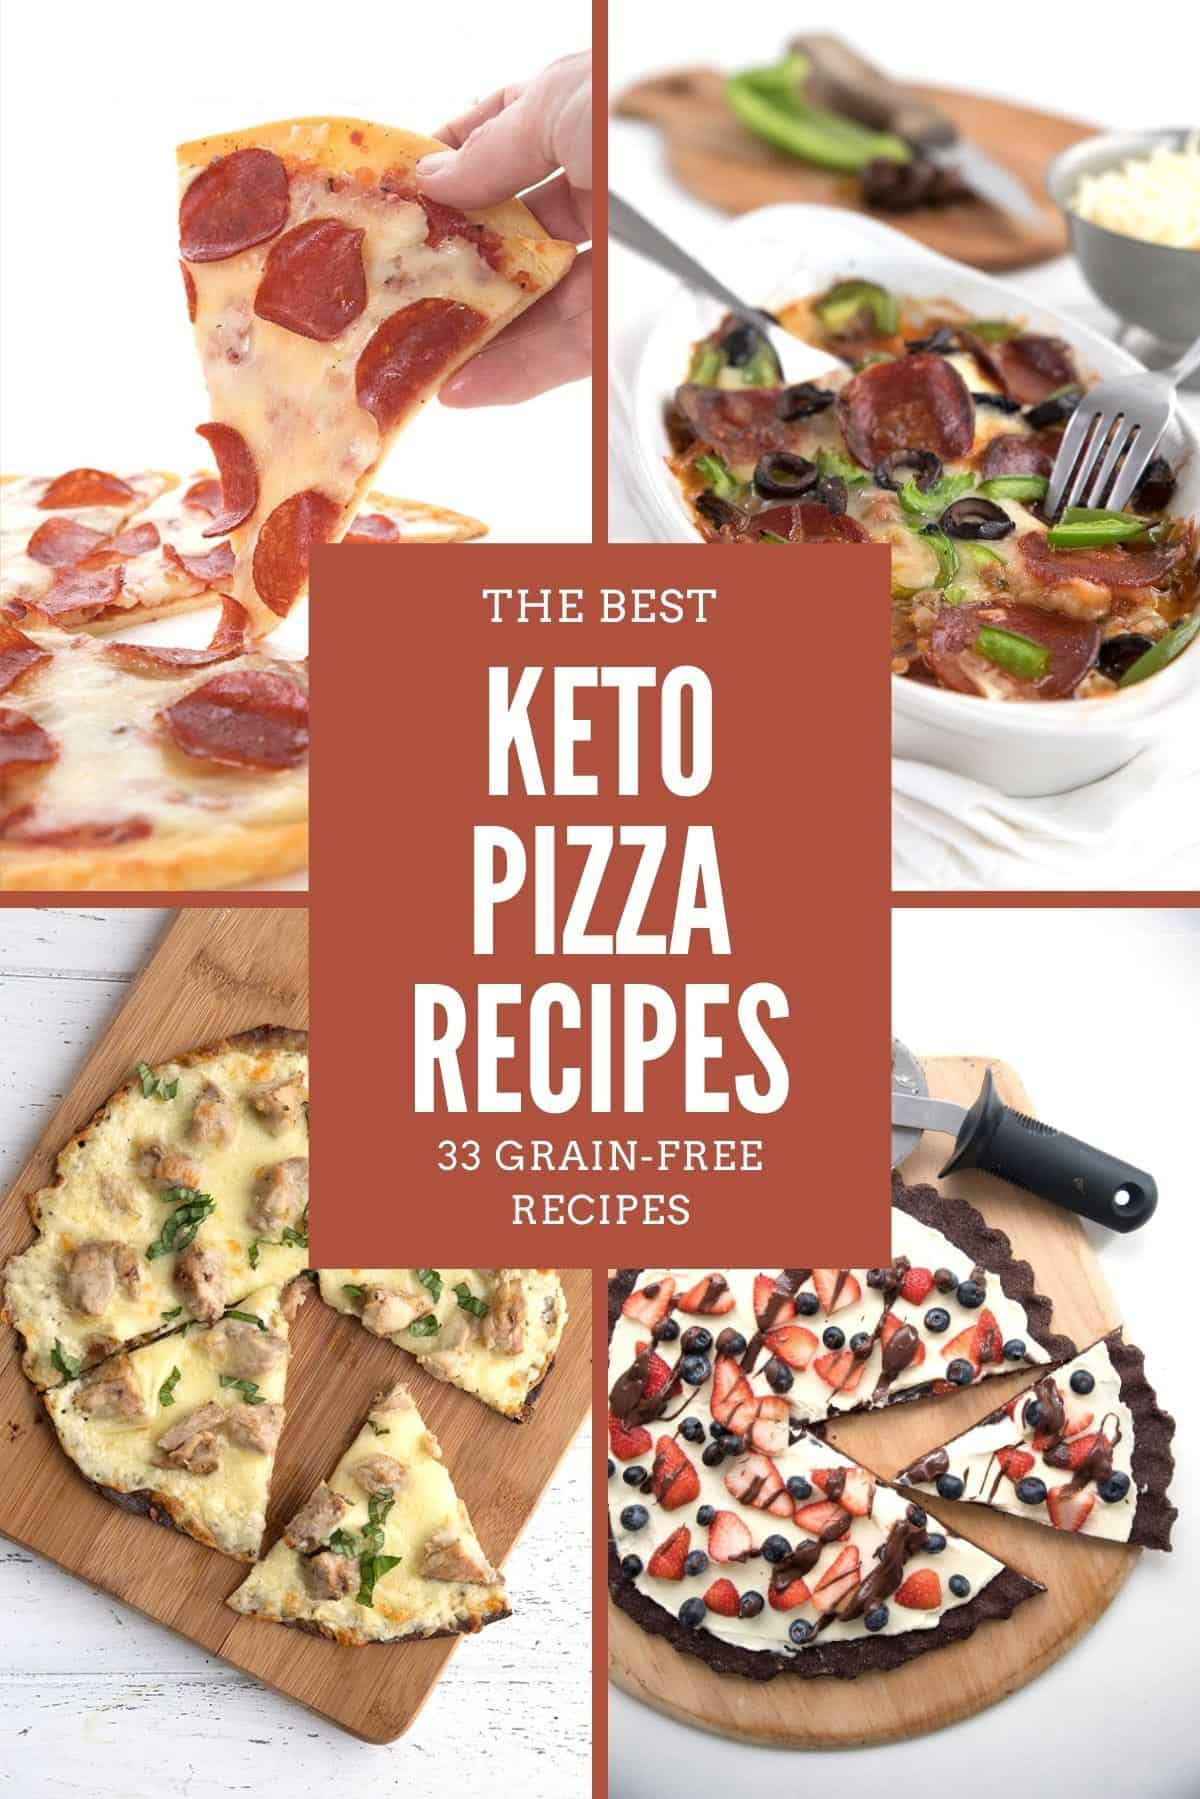 Collage of Keto Pizza Recipes with a title in the center.